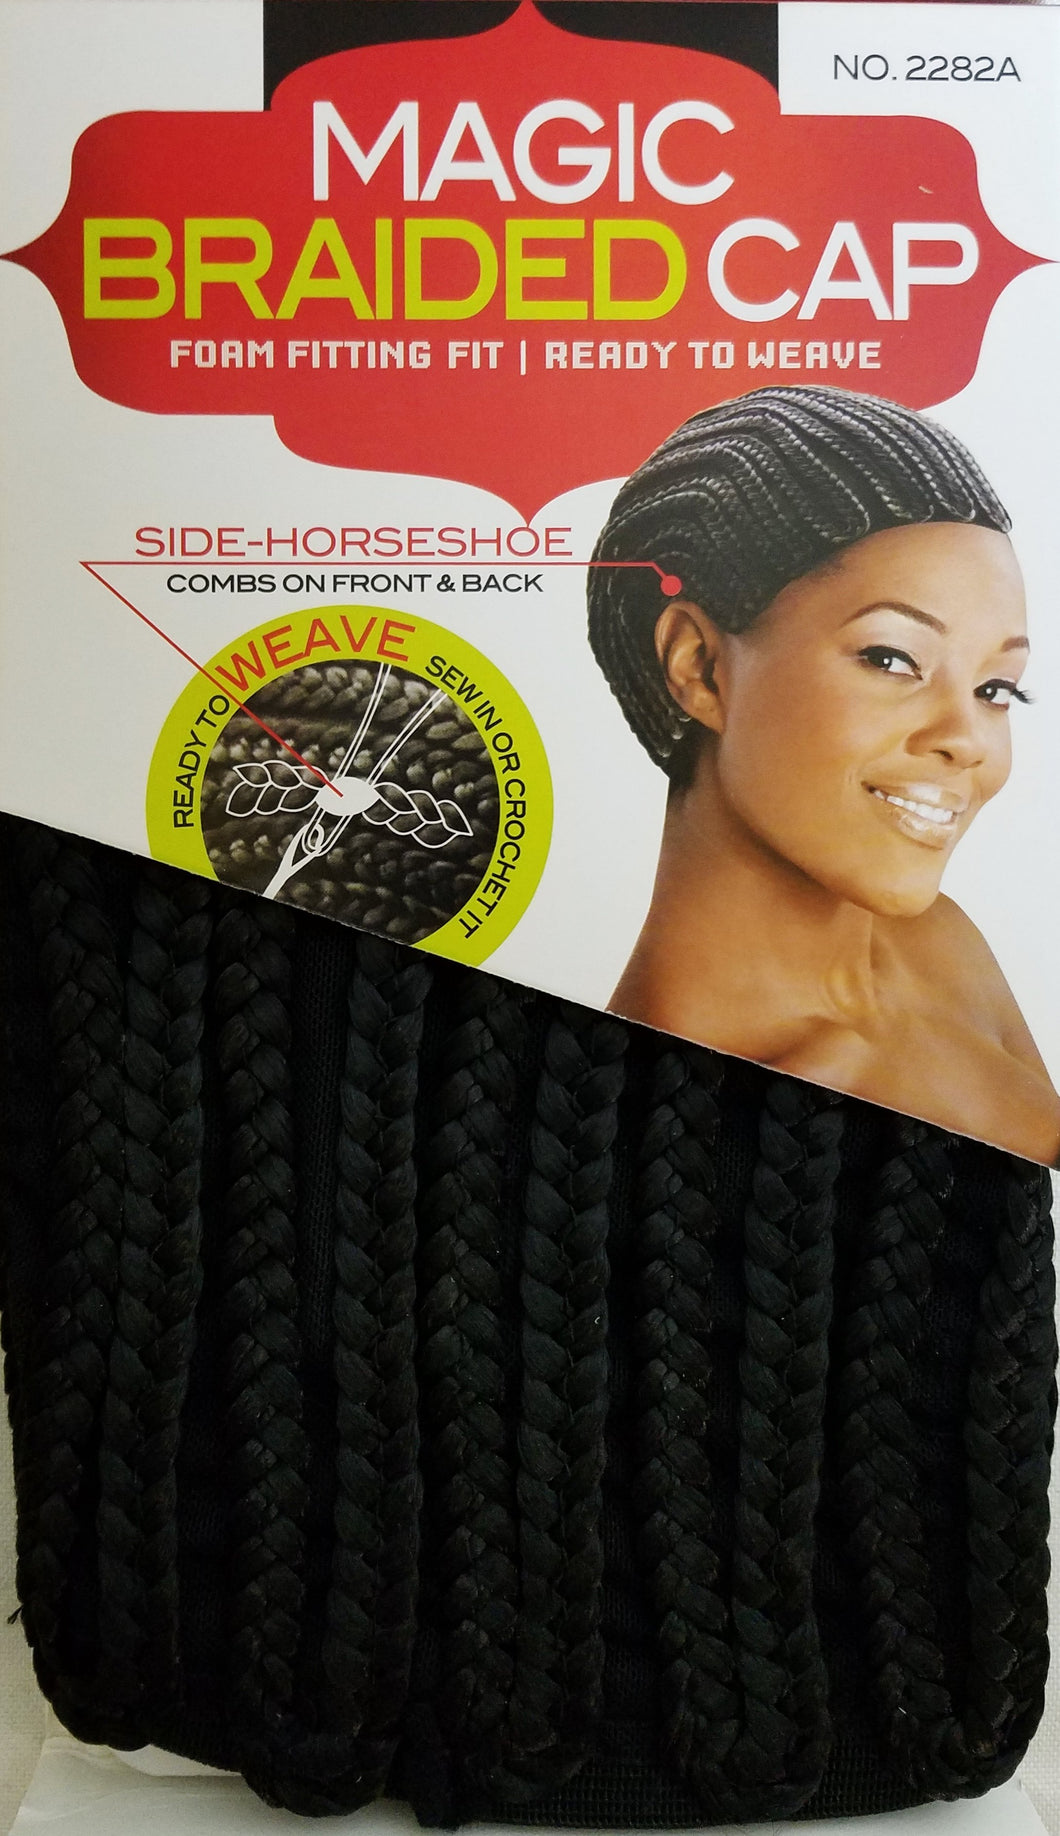 Braid cap